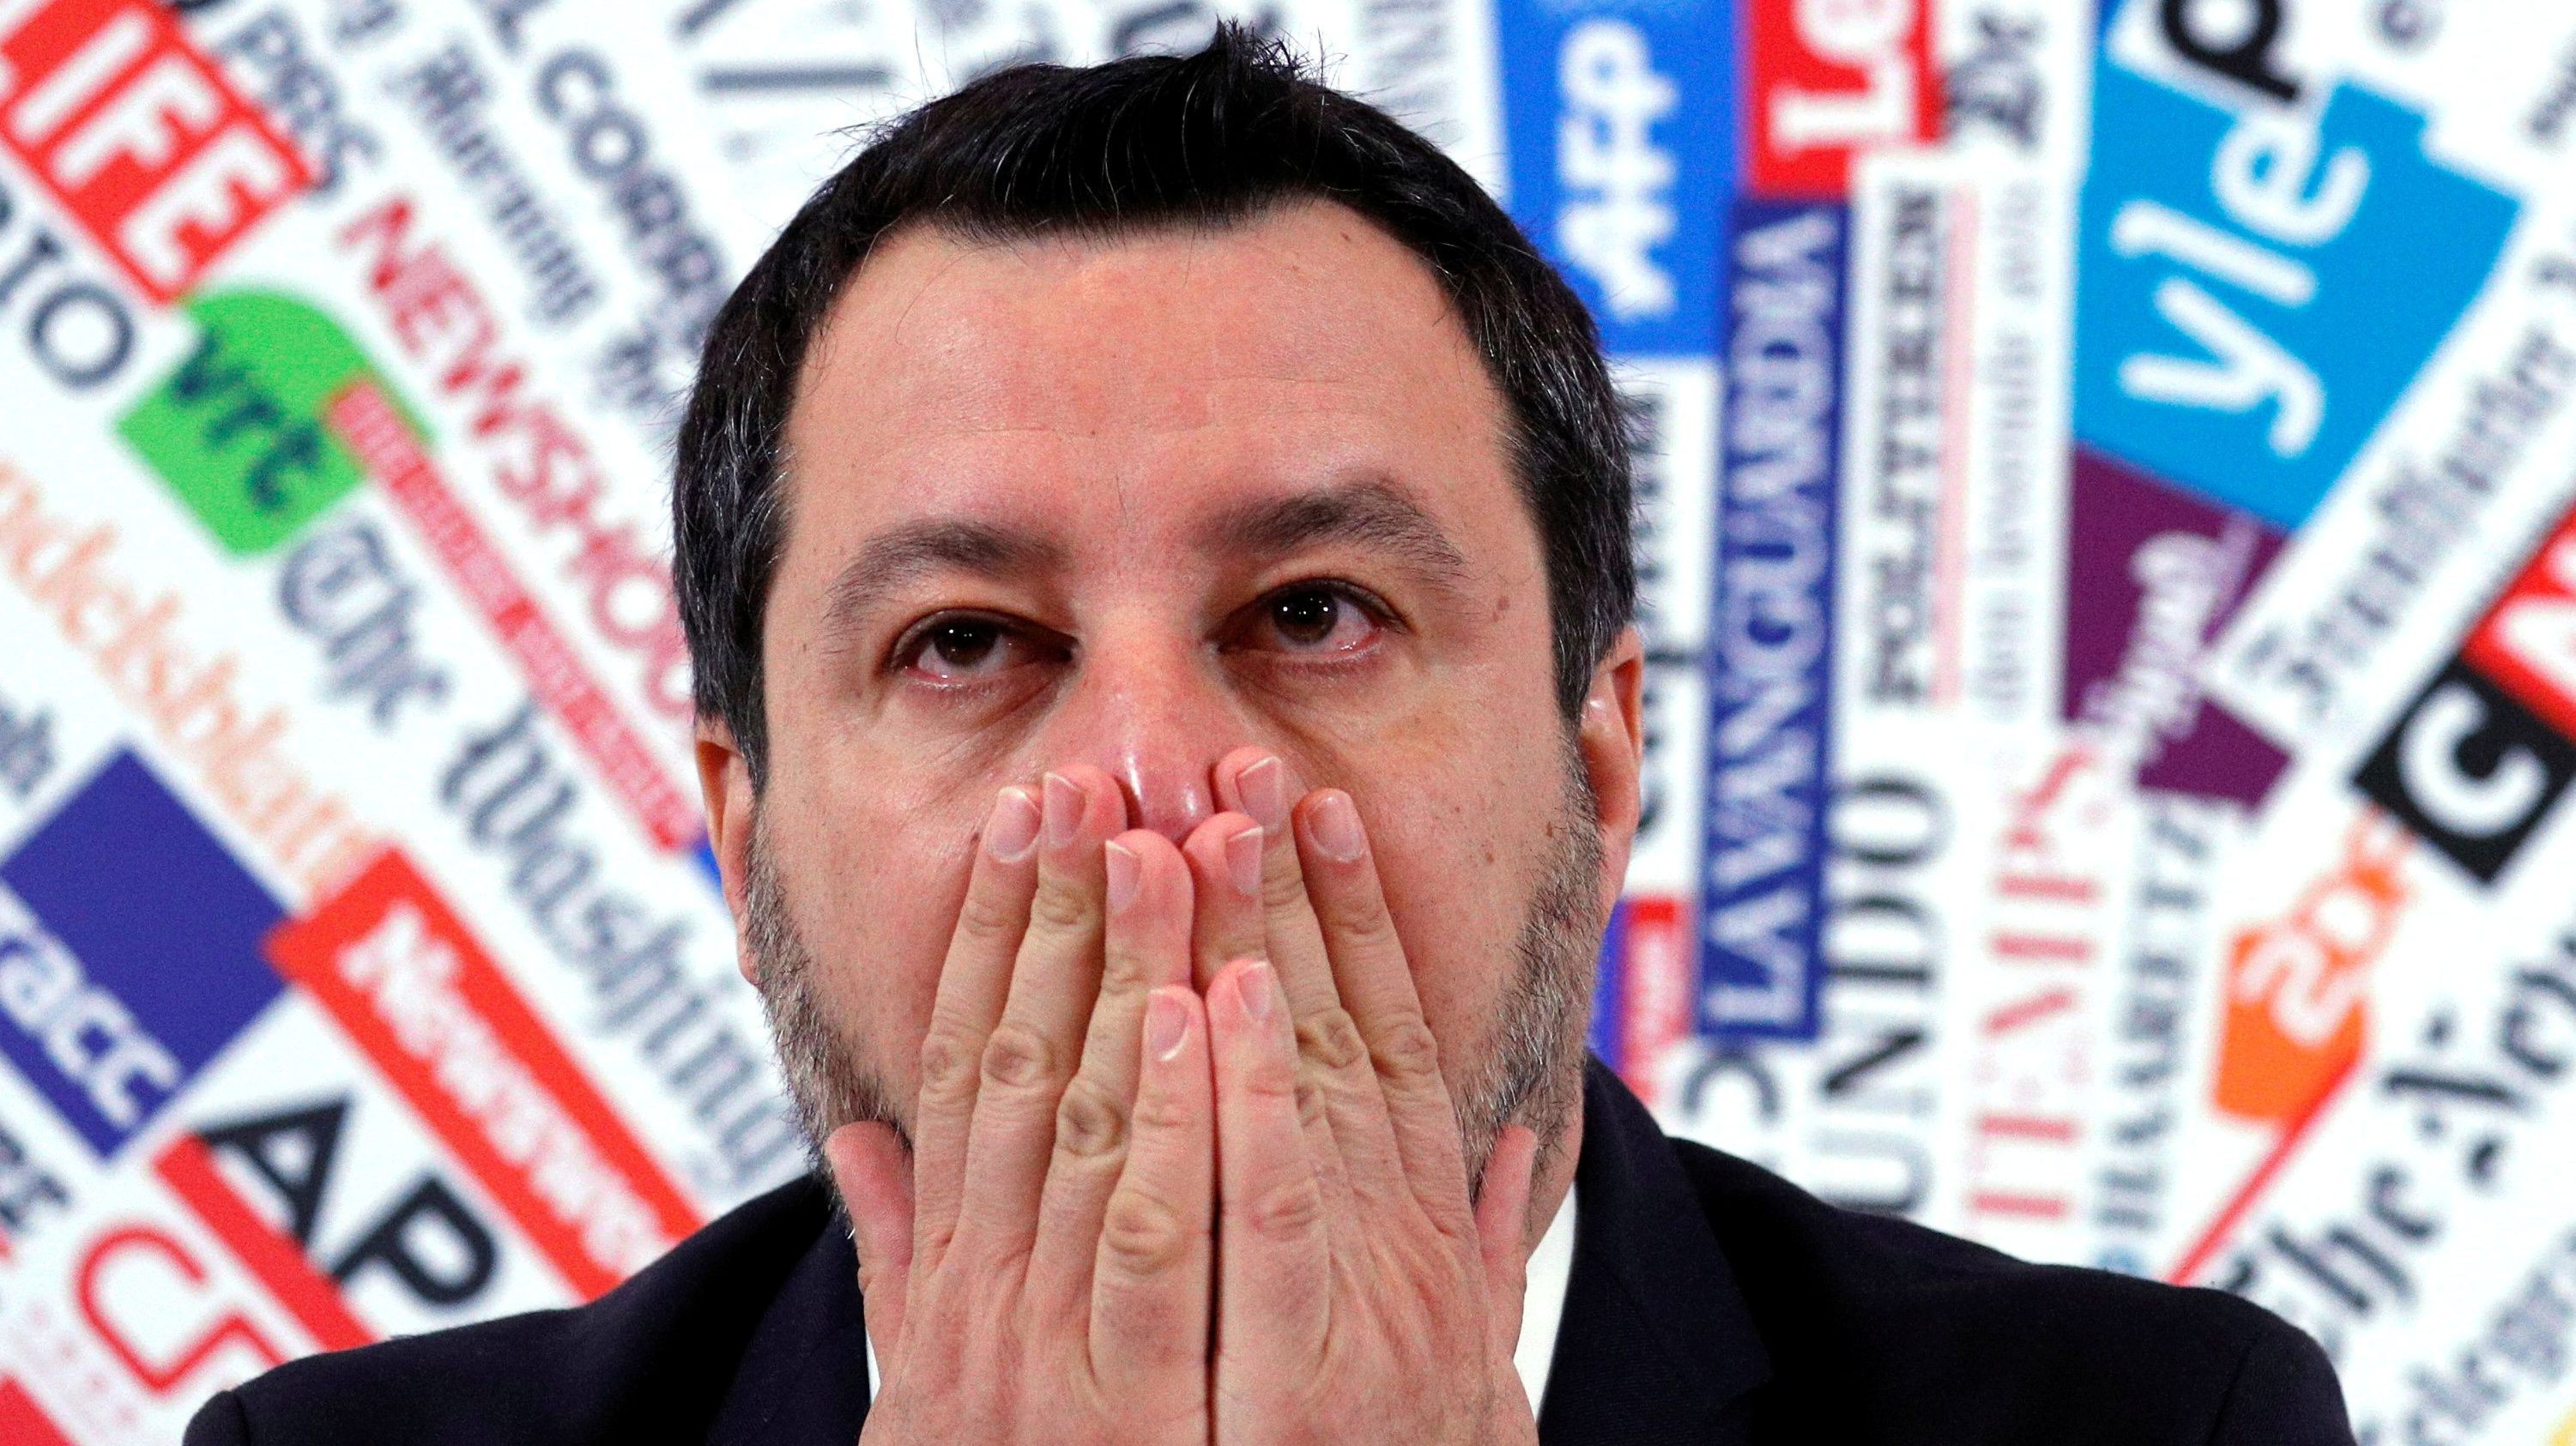 Leader of Italy's far-right party Matteo Salvini gestures during a news conference in Rome